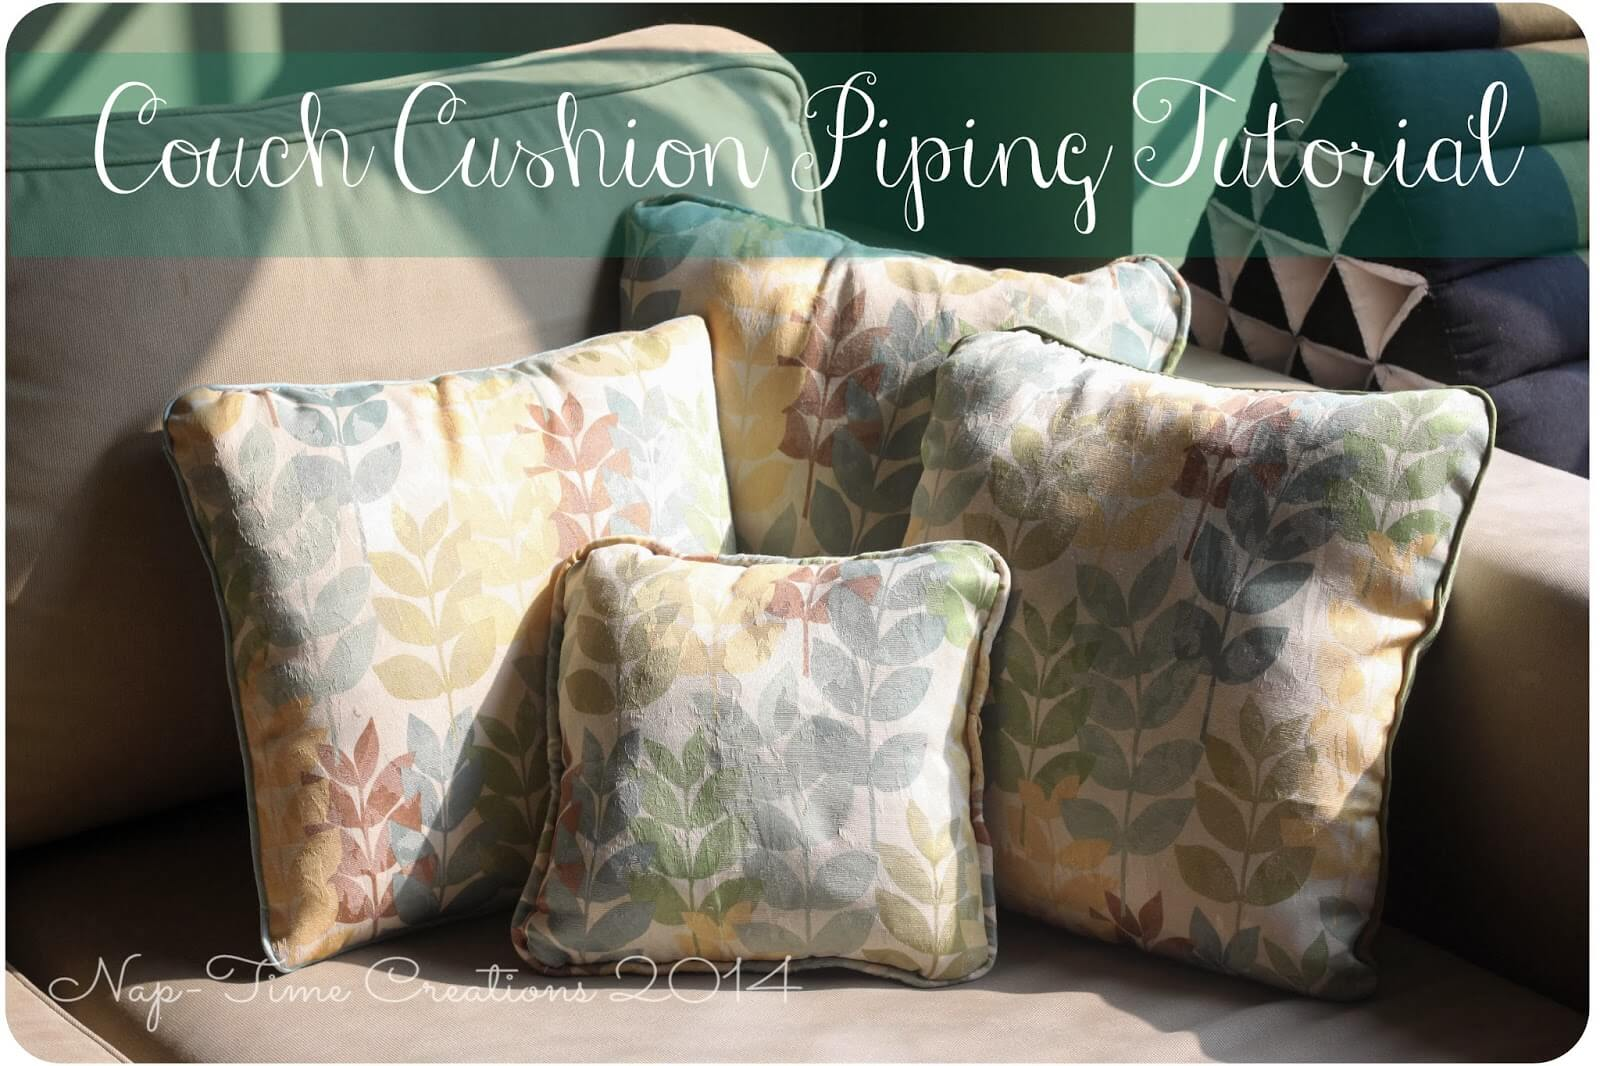 Sewing A Throw Pillow With Piping Tutorial Nap Time